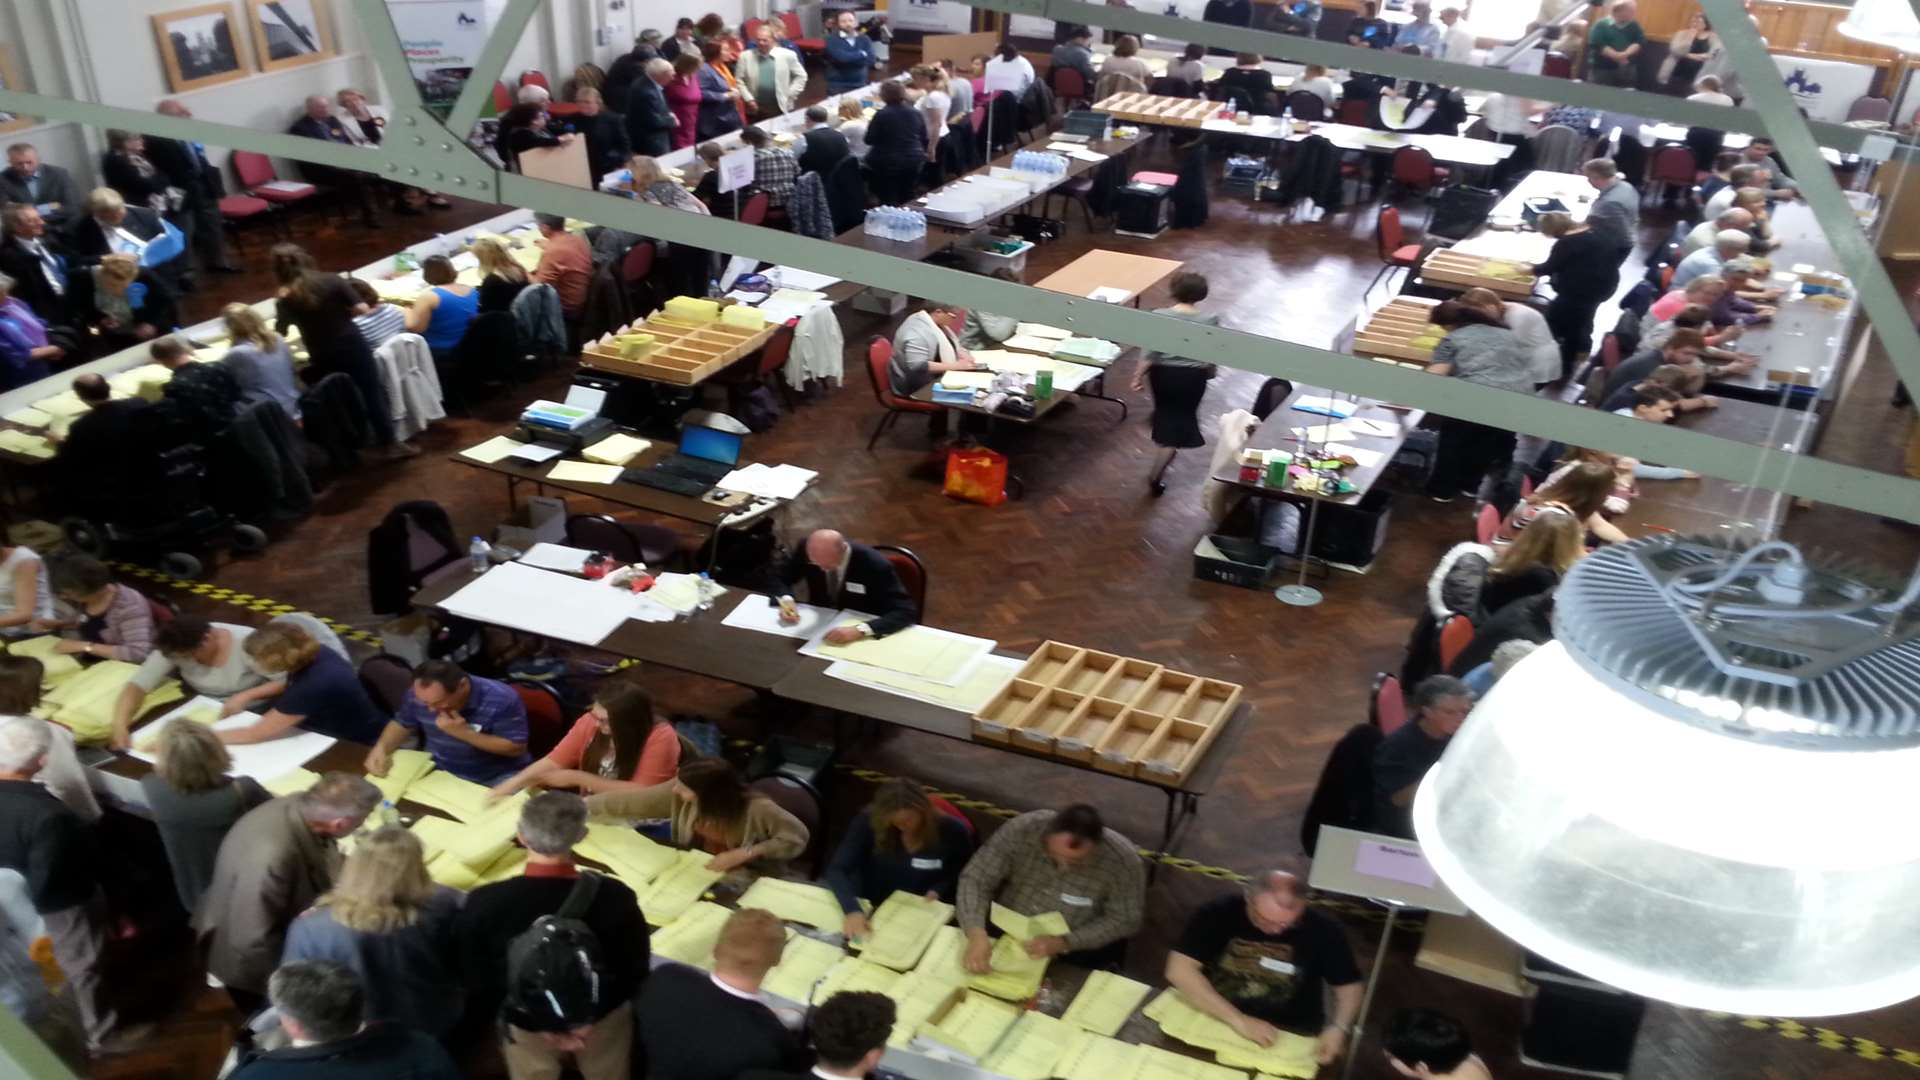 The city council election count at the Westgate Hall